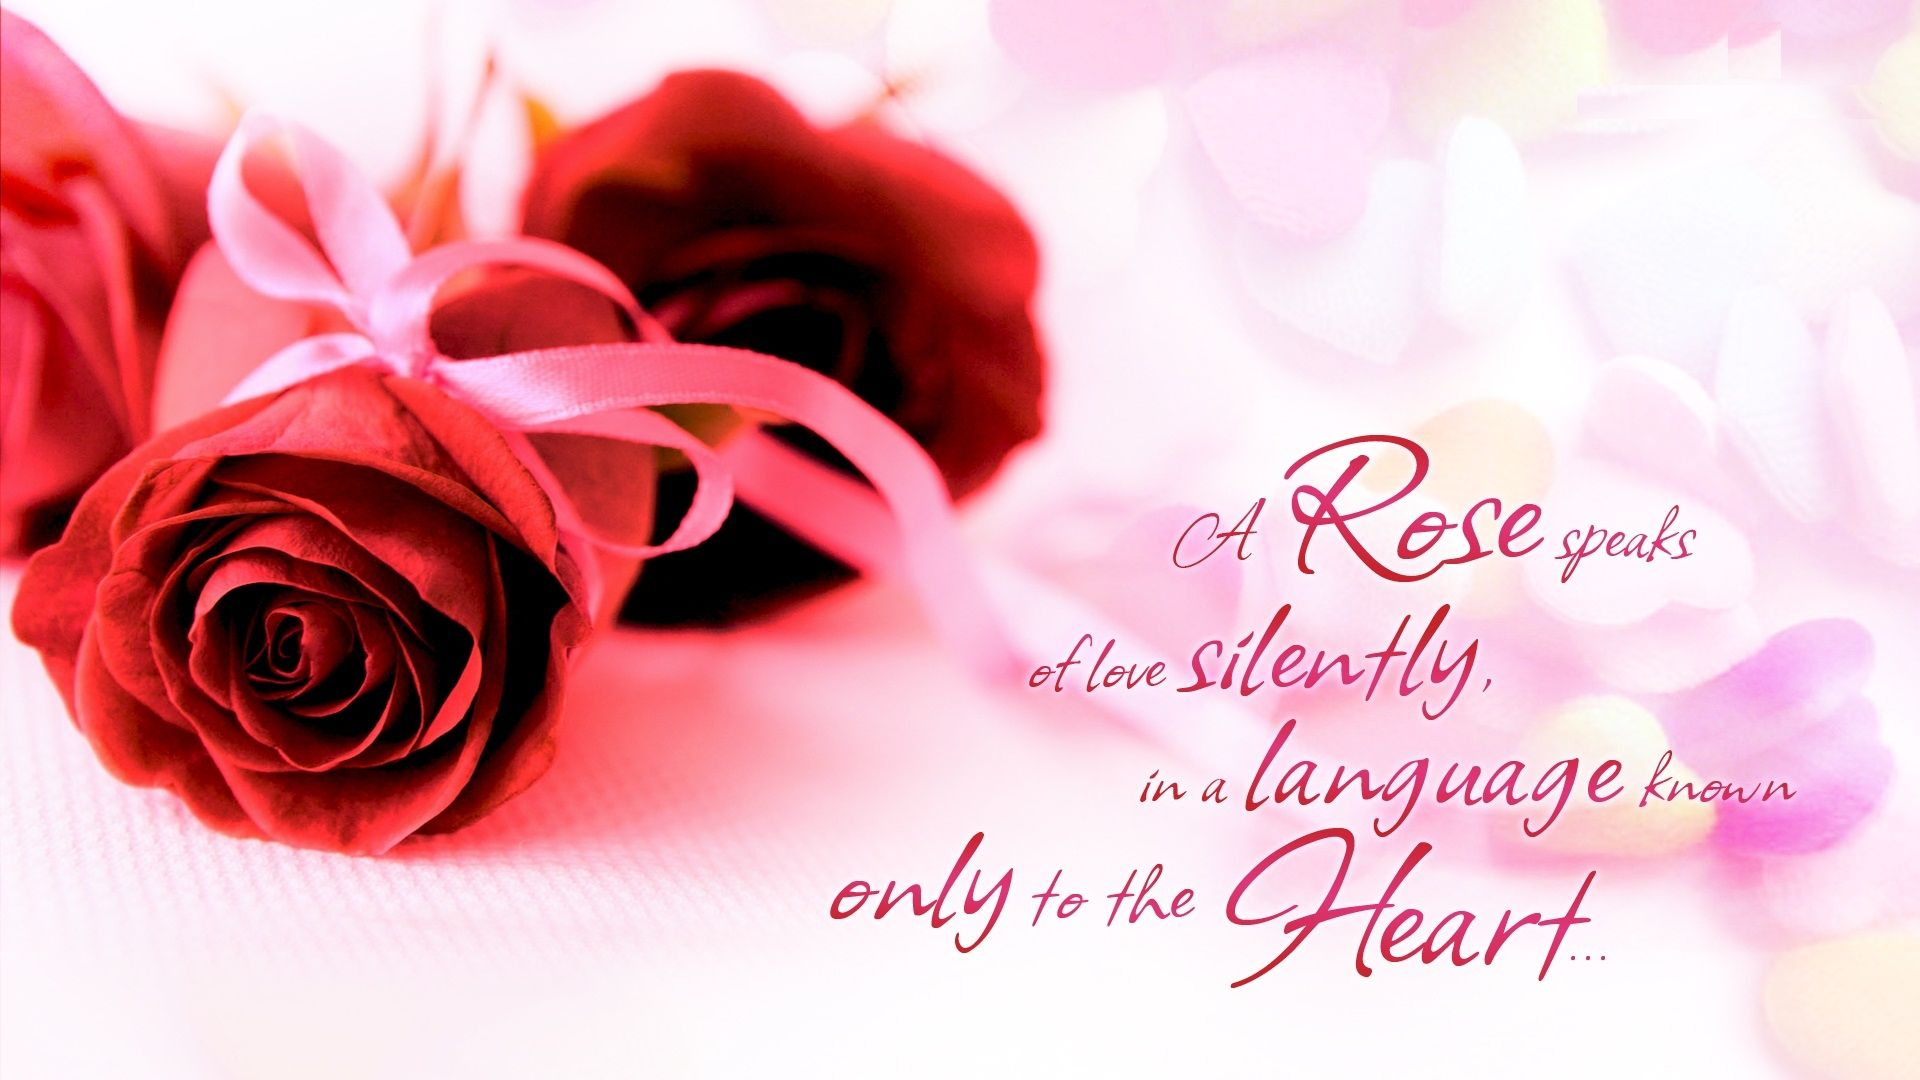 Love Wallpaper Love Rose Day Wishes Valentines Day Messages Happy Valentine Day Quotes